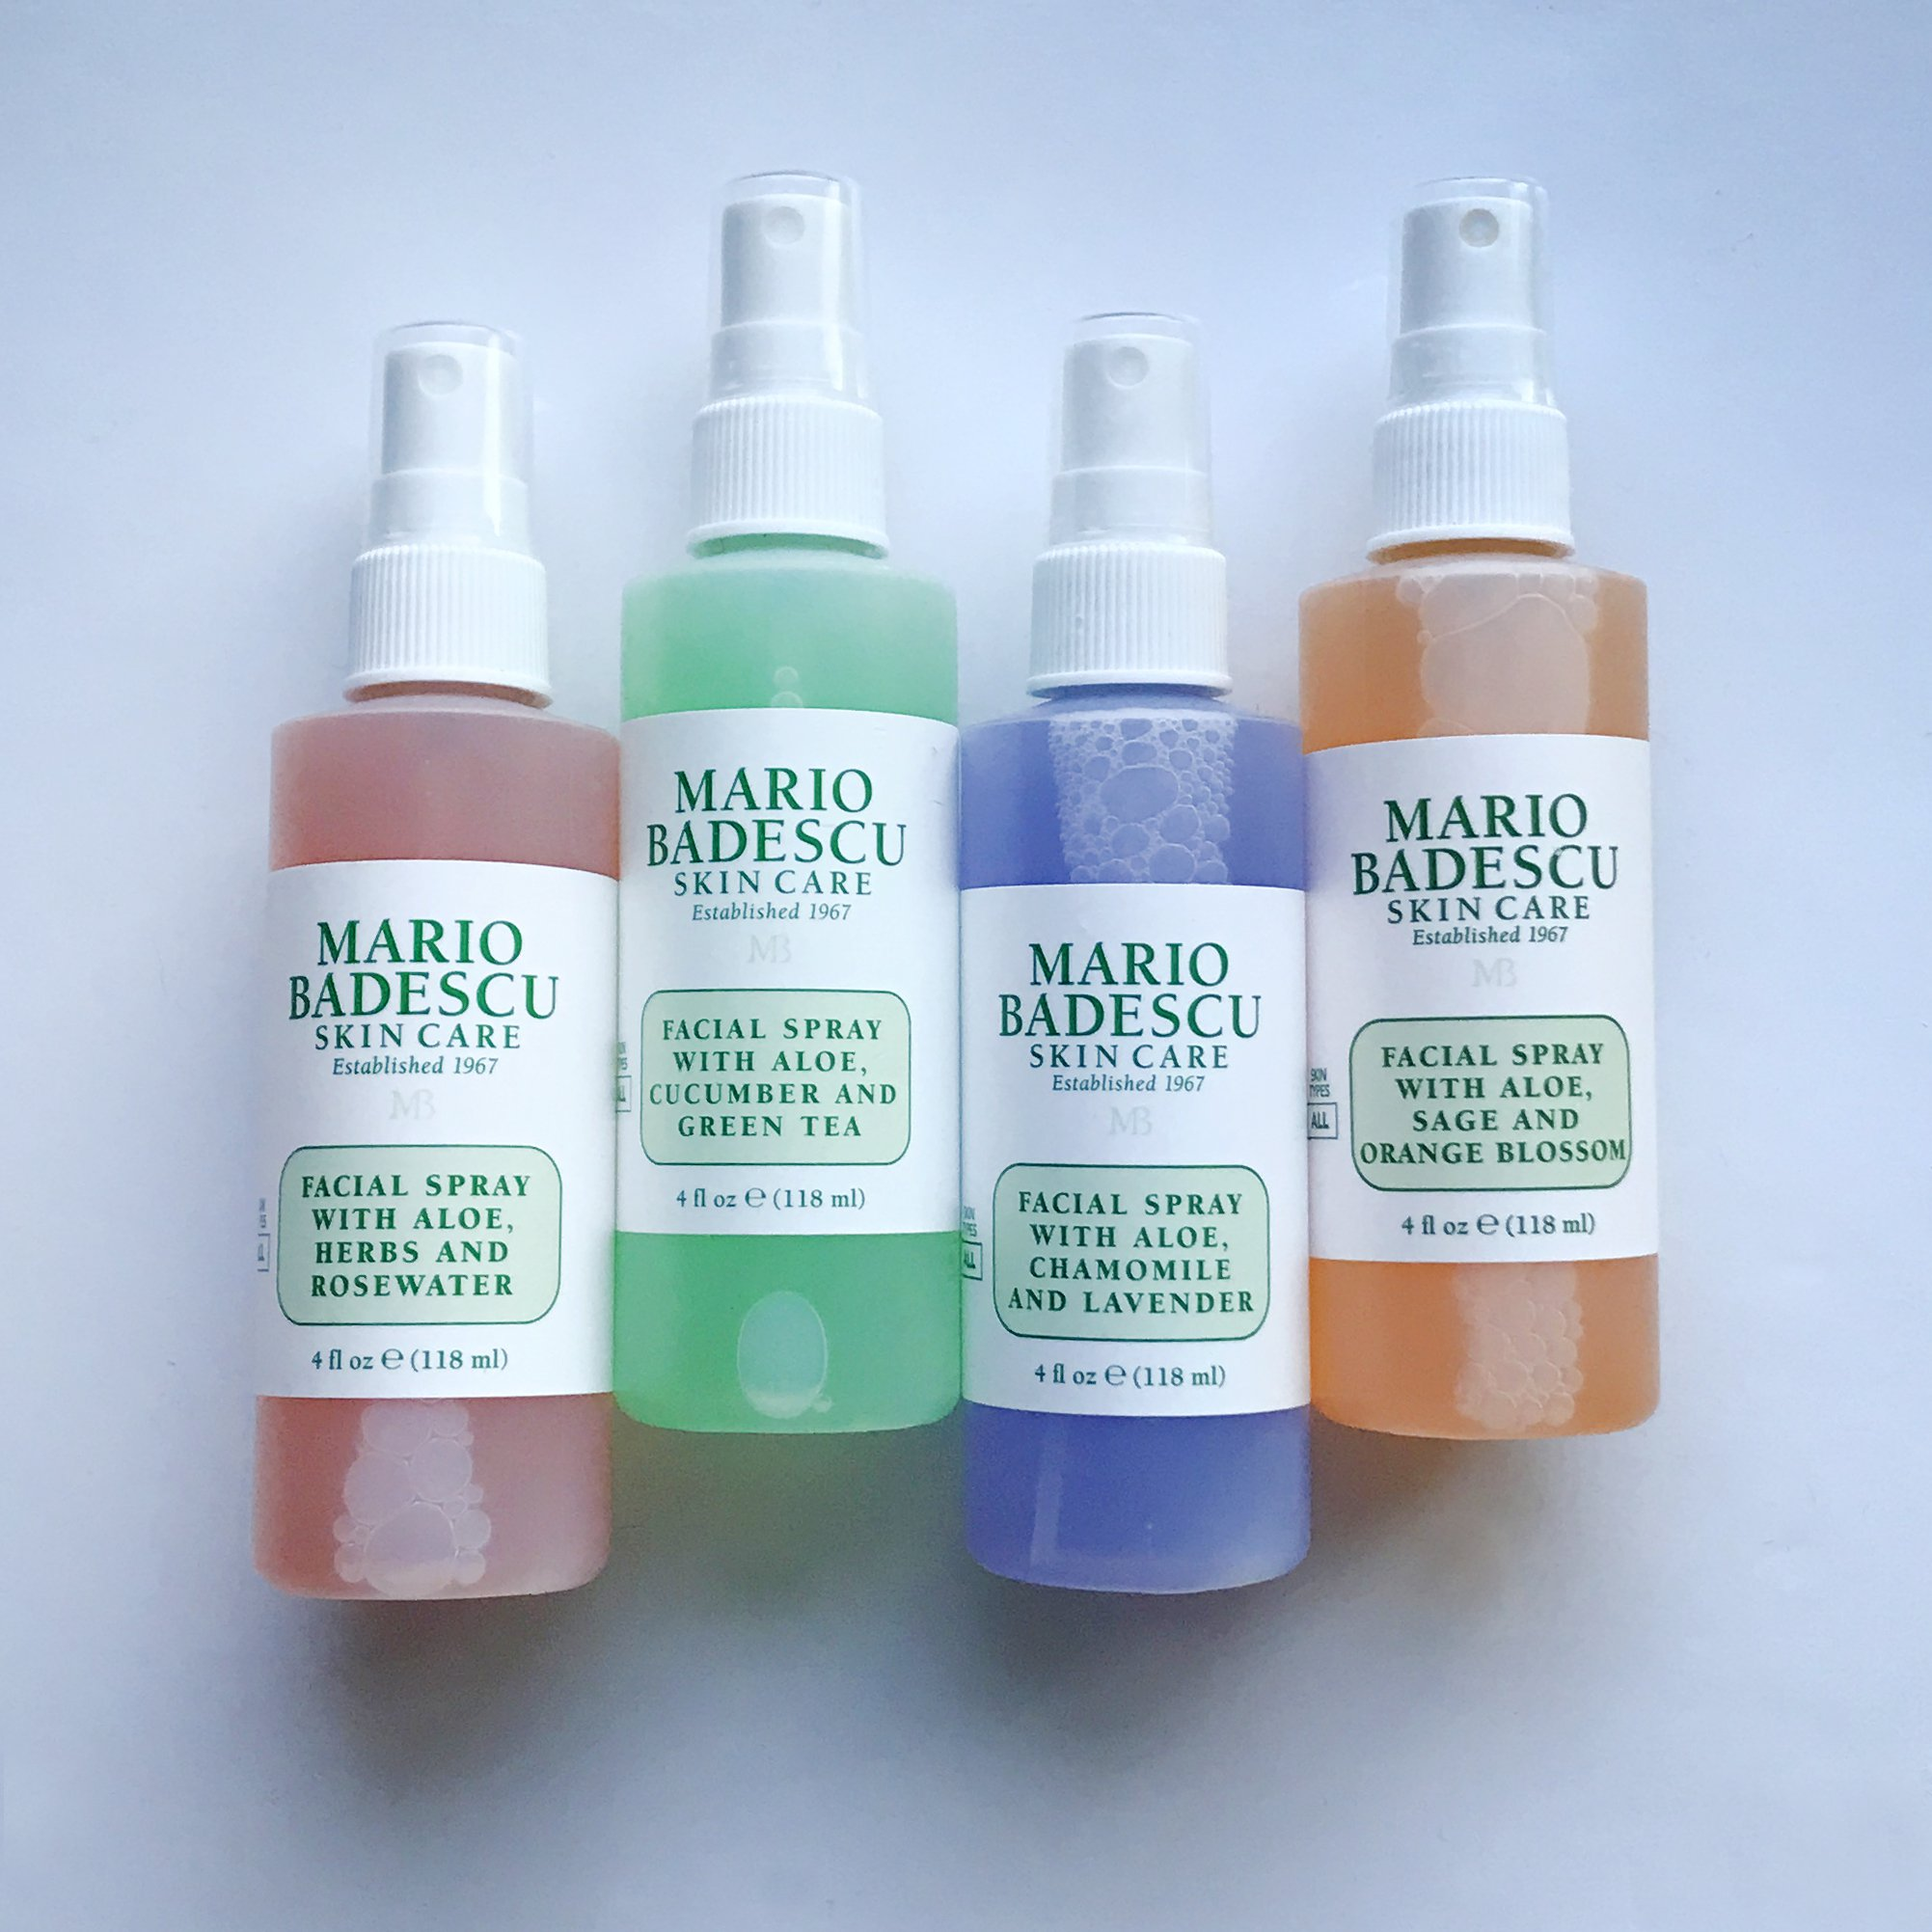 Mario Badescu Facial Spray Comparison Guide